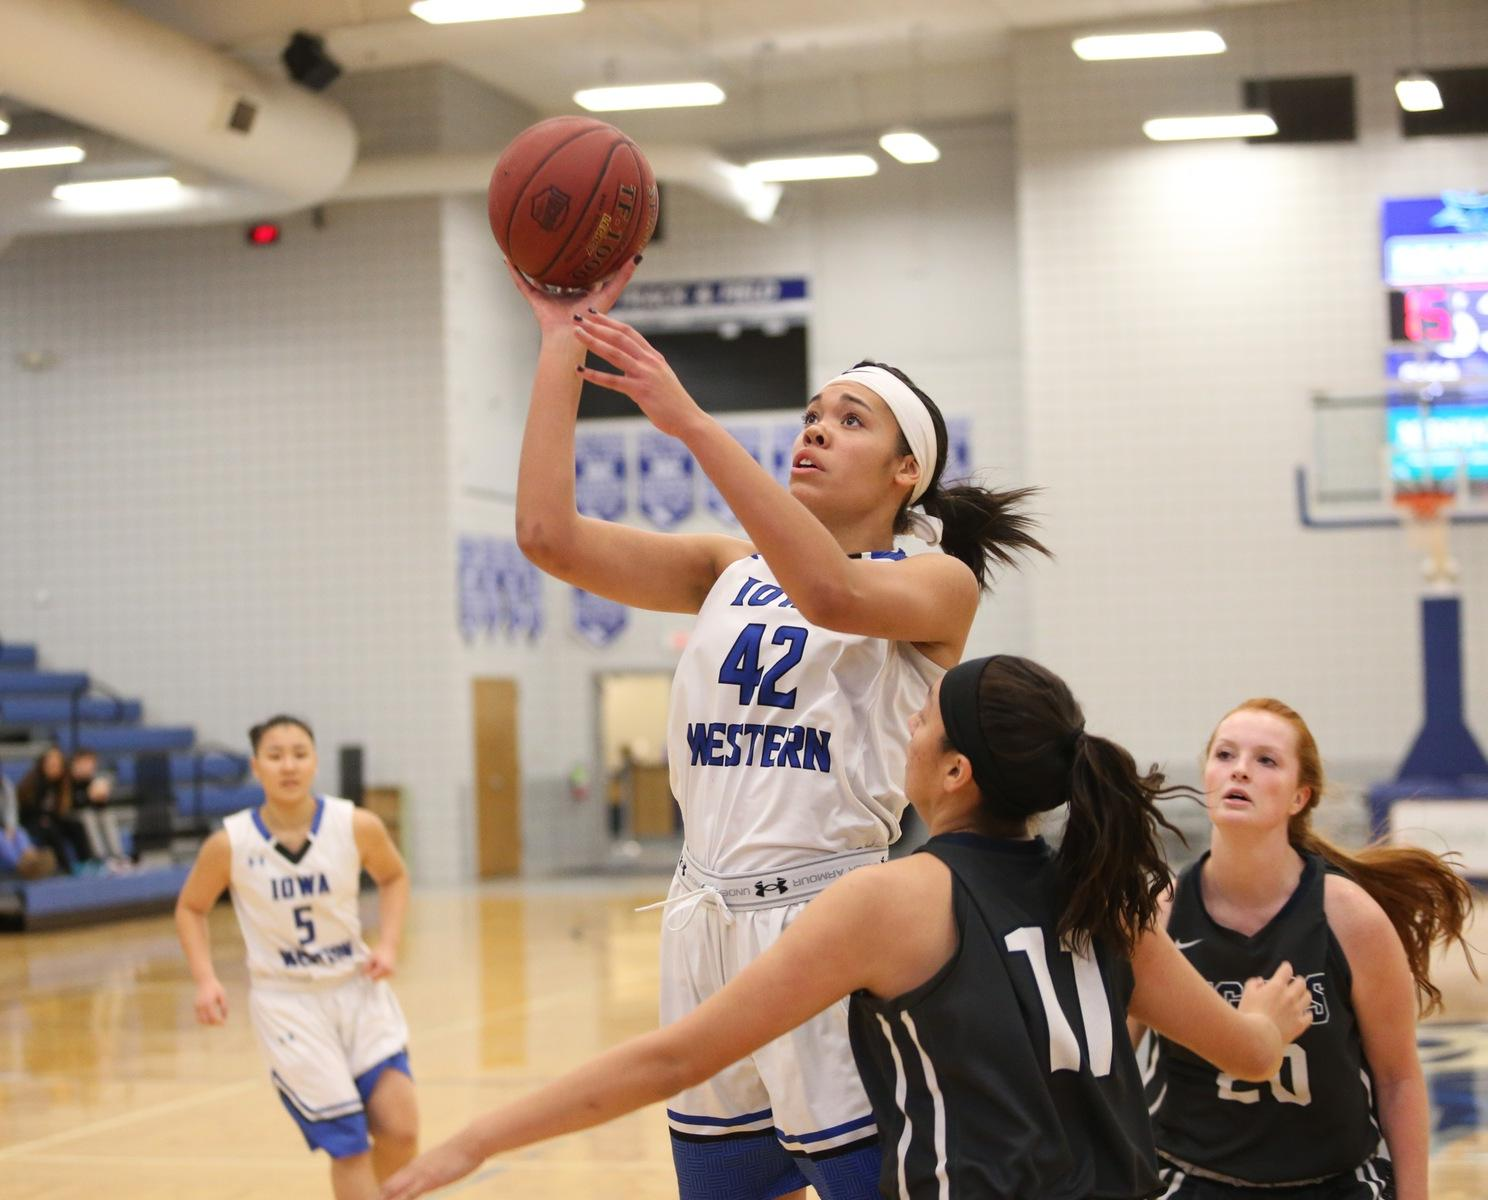 Kiara Dallmann tallied 11 points in the win over Marshalltown this past Wednesday for the Reivers 13th straight-win.